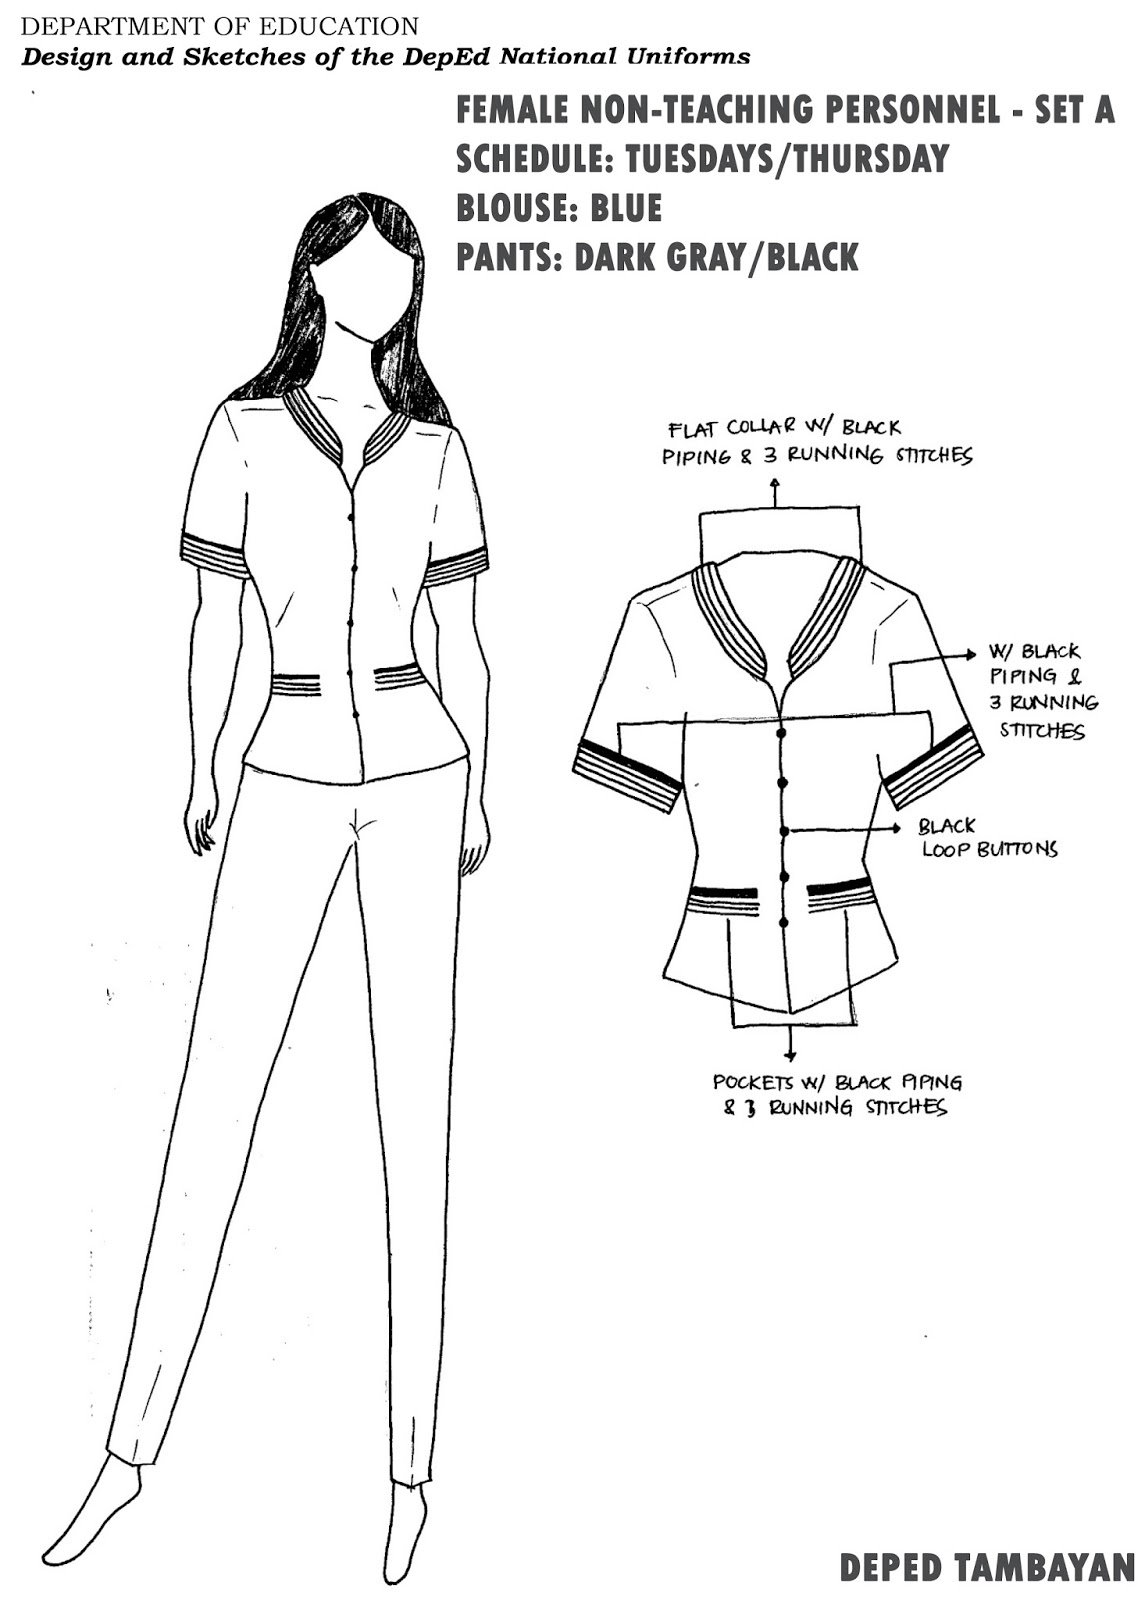 Sample Letter Of Request For Approval For Uniforms